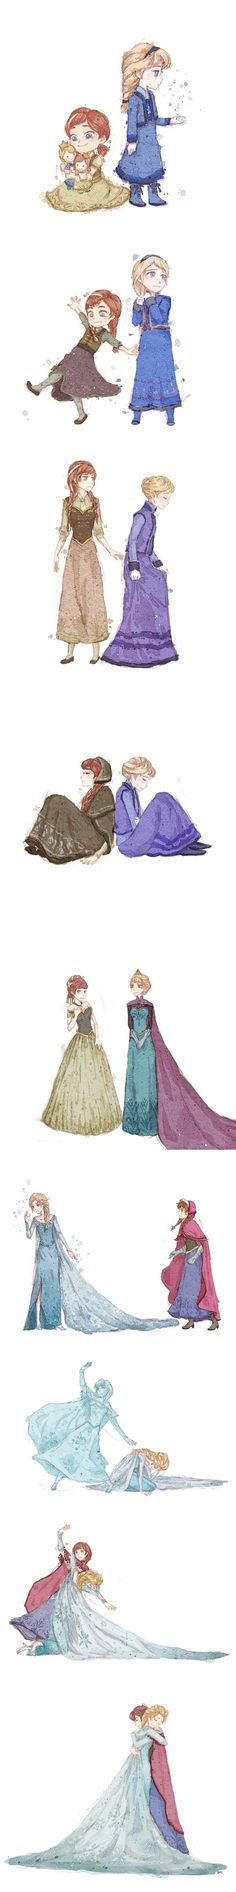 Elsa and Anna through the years